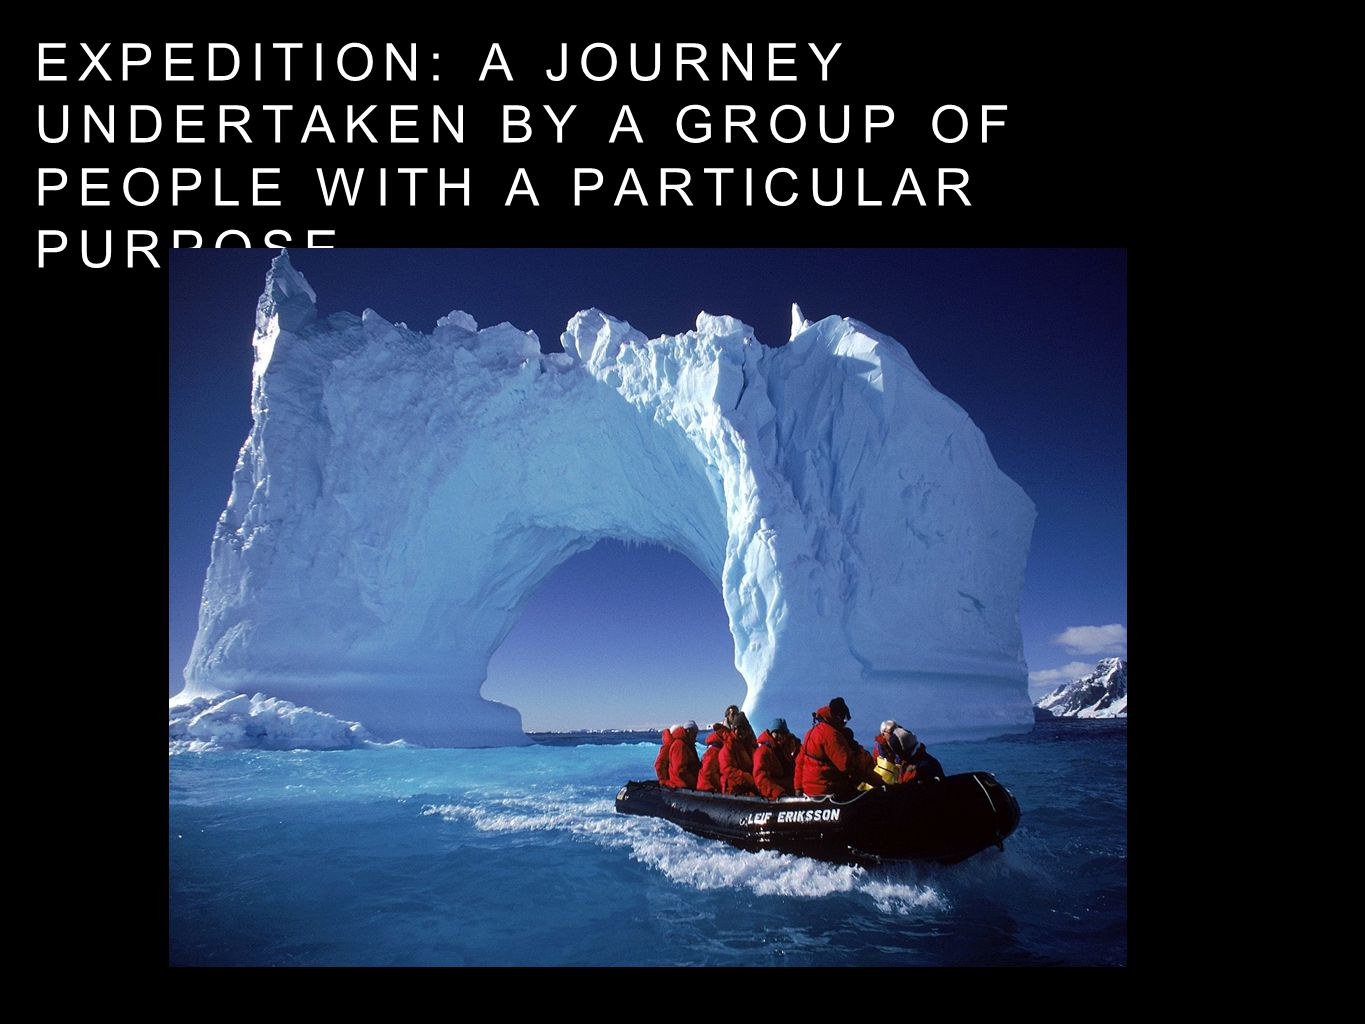 Expedition: A Journey undertaken by a group of people with a particular purpose